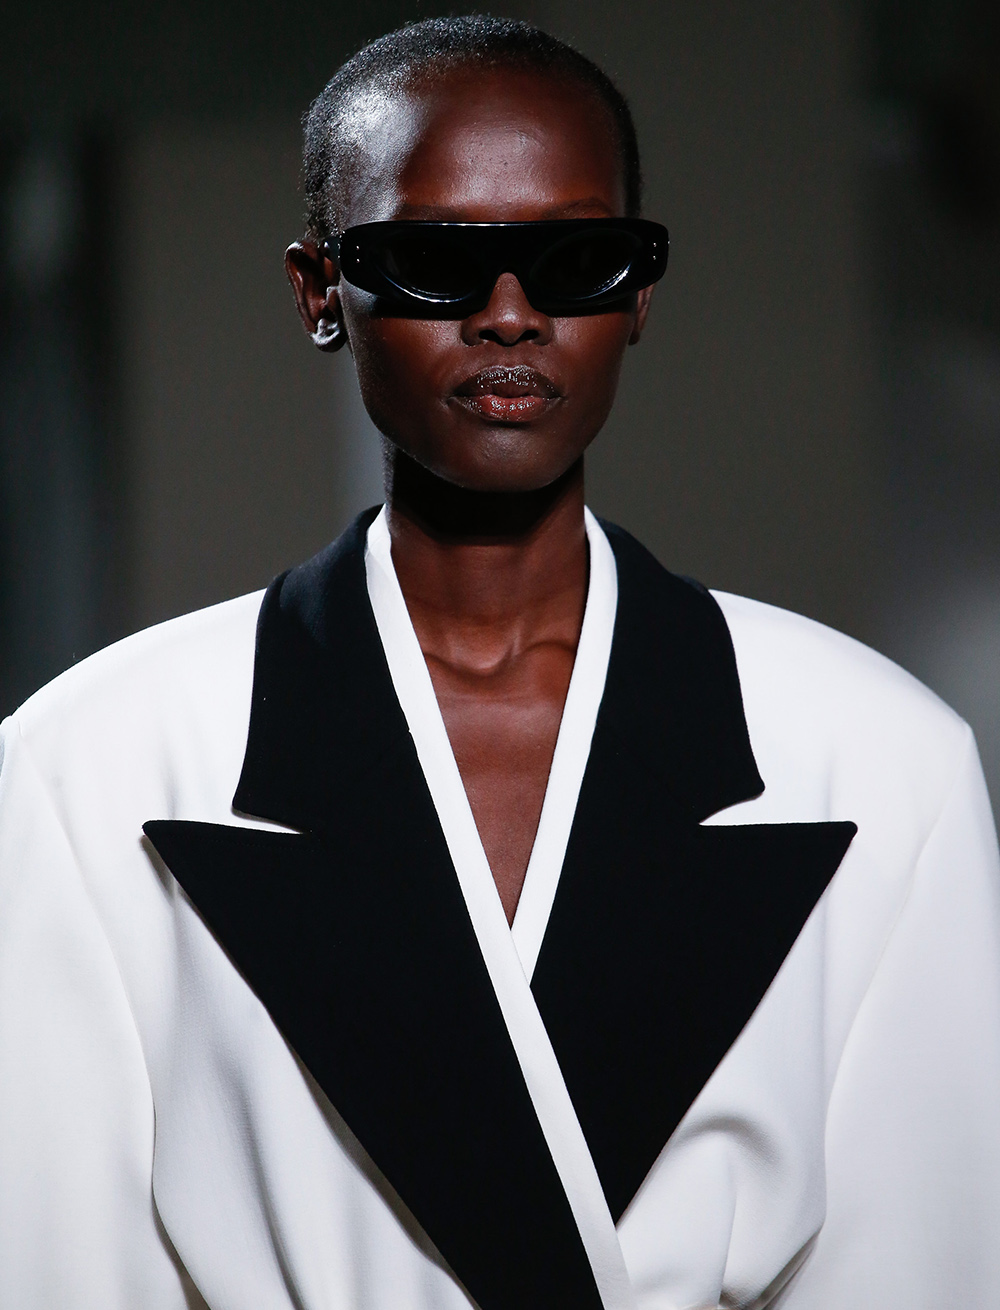 Detail image of runway model with sunglasses from the Spring/Summer 2020 Runway show